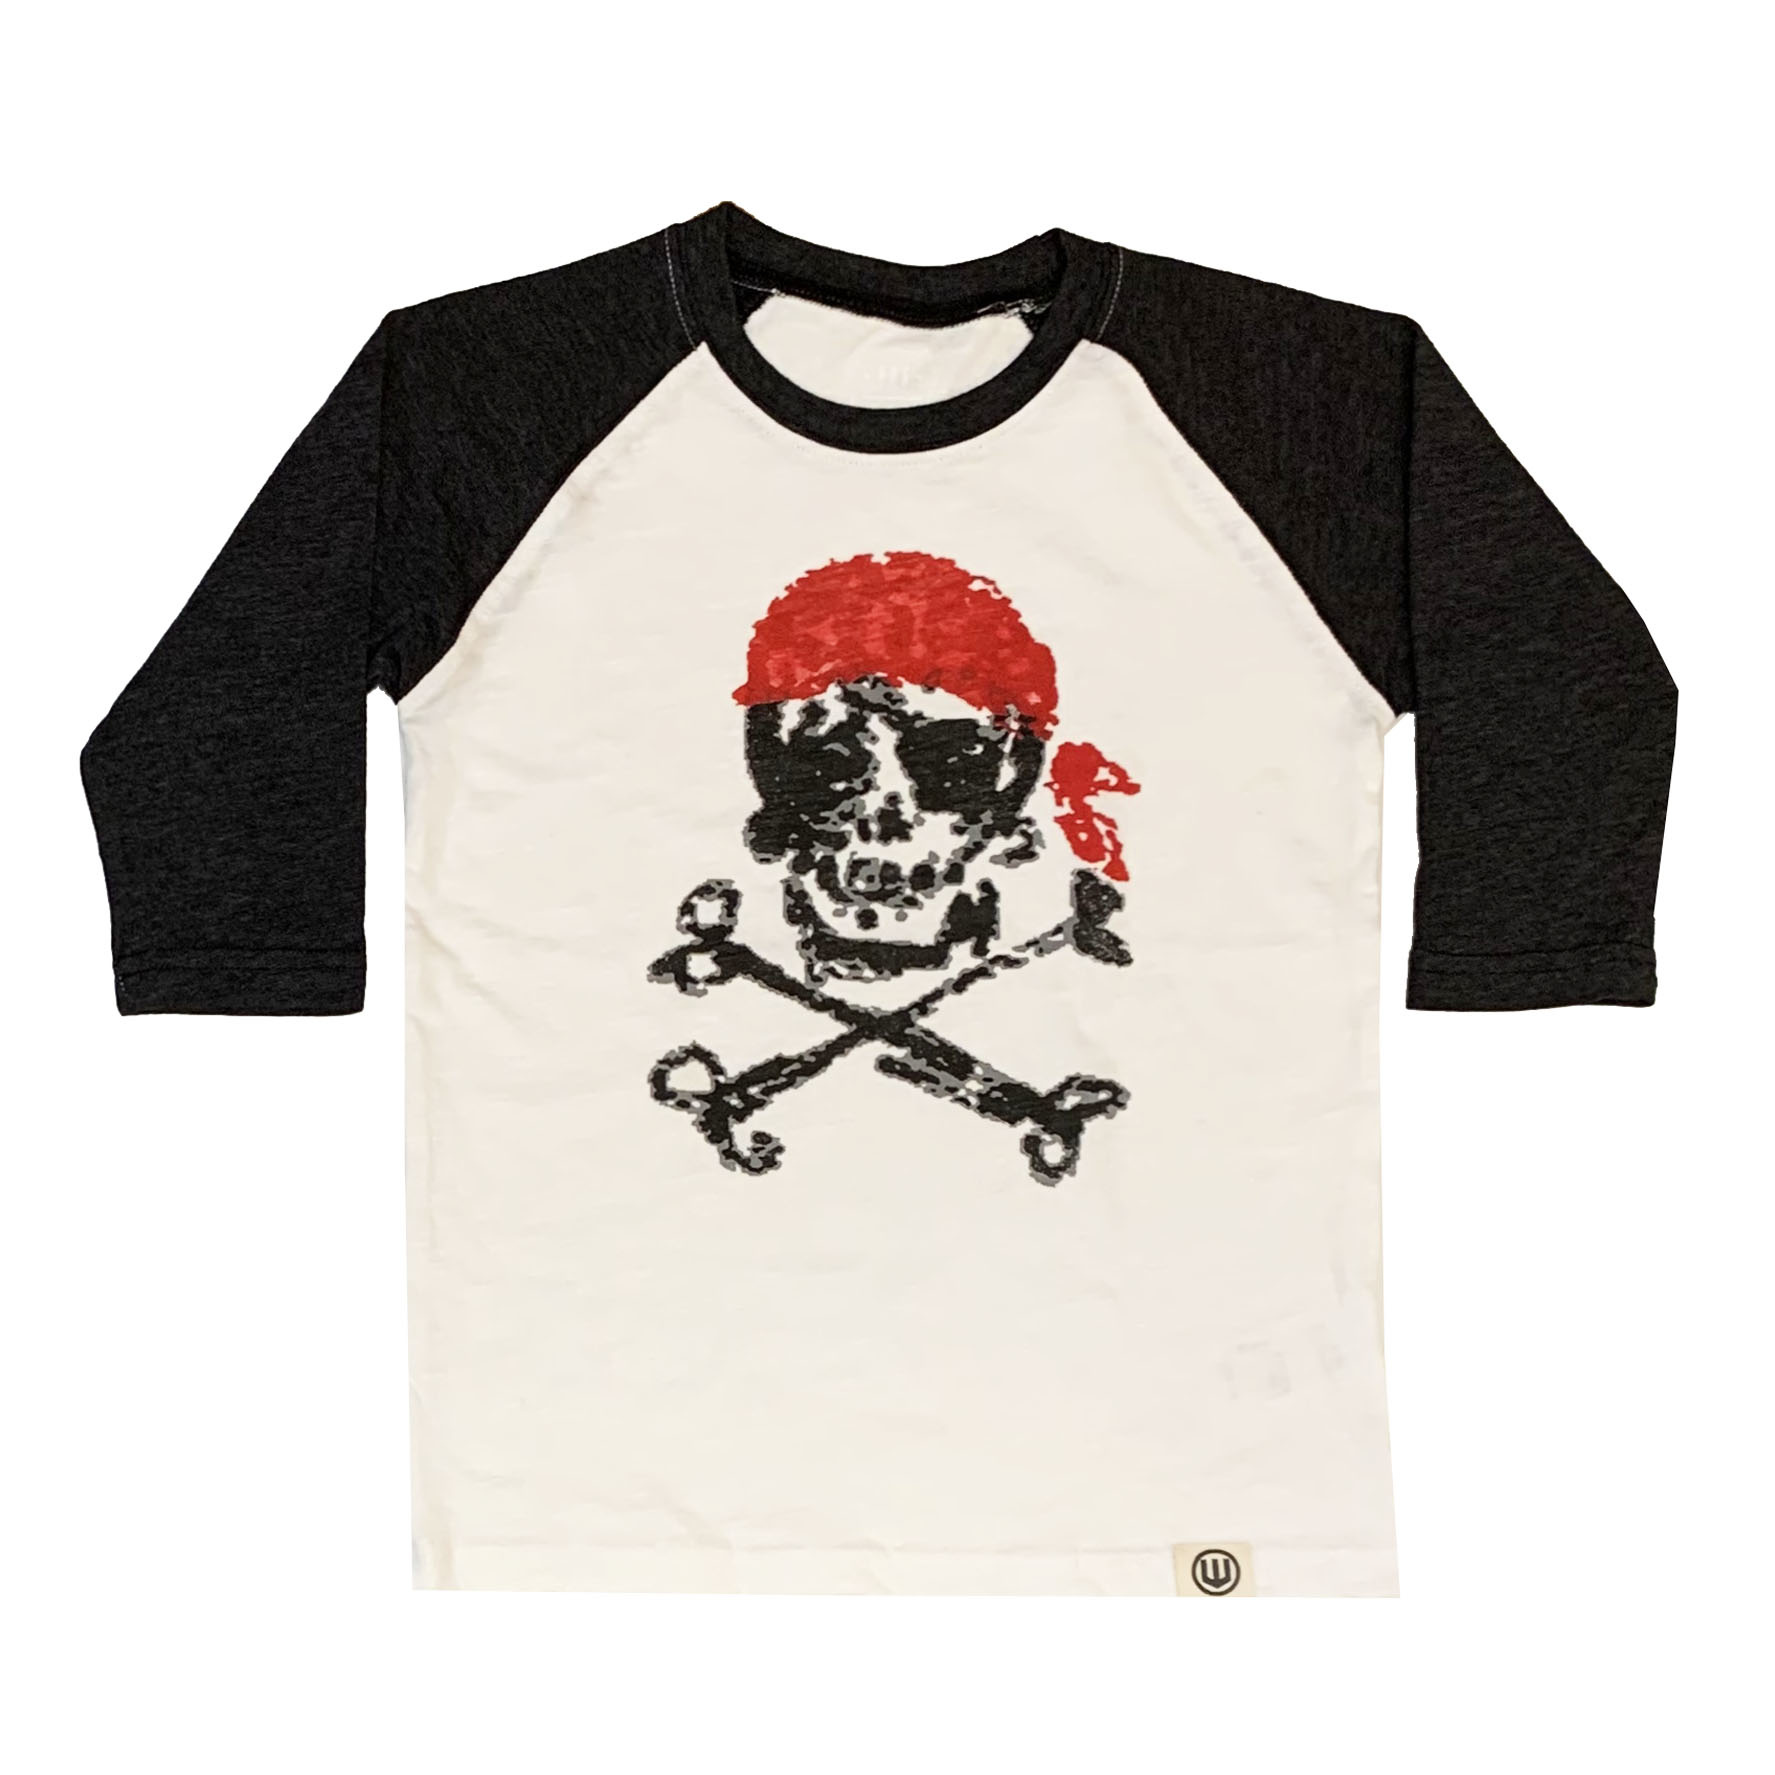 Wes & Willy Infant Pirate Skull Raglan Top